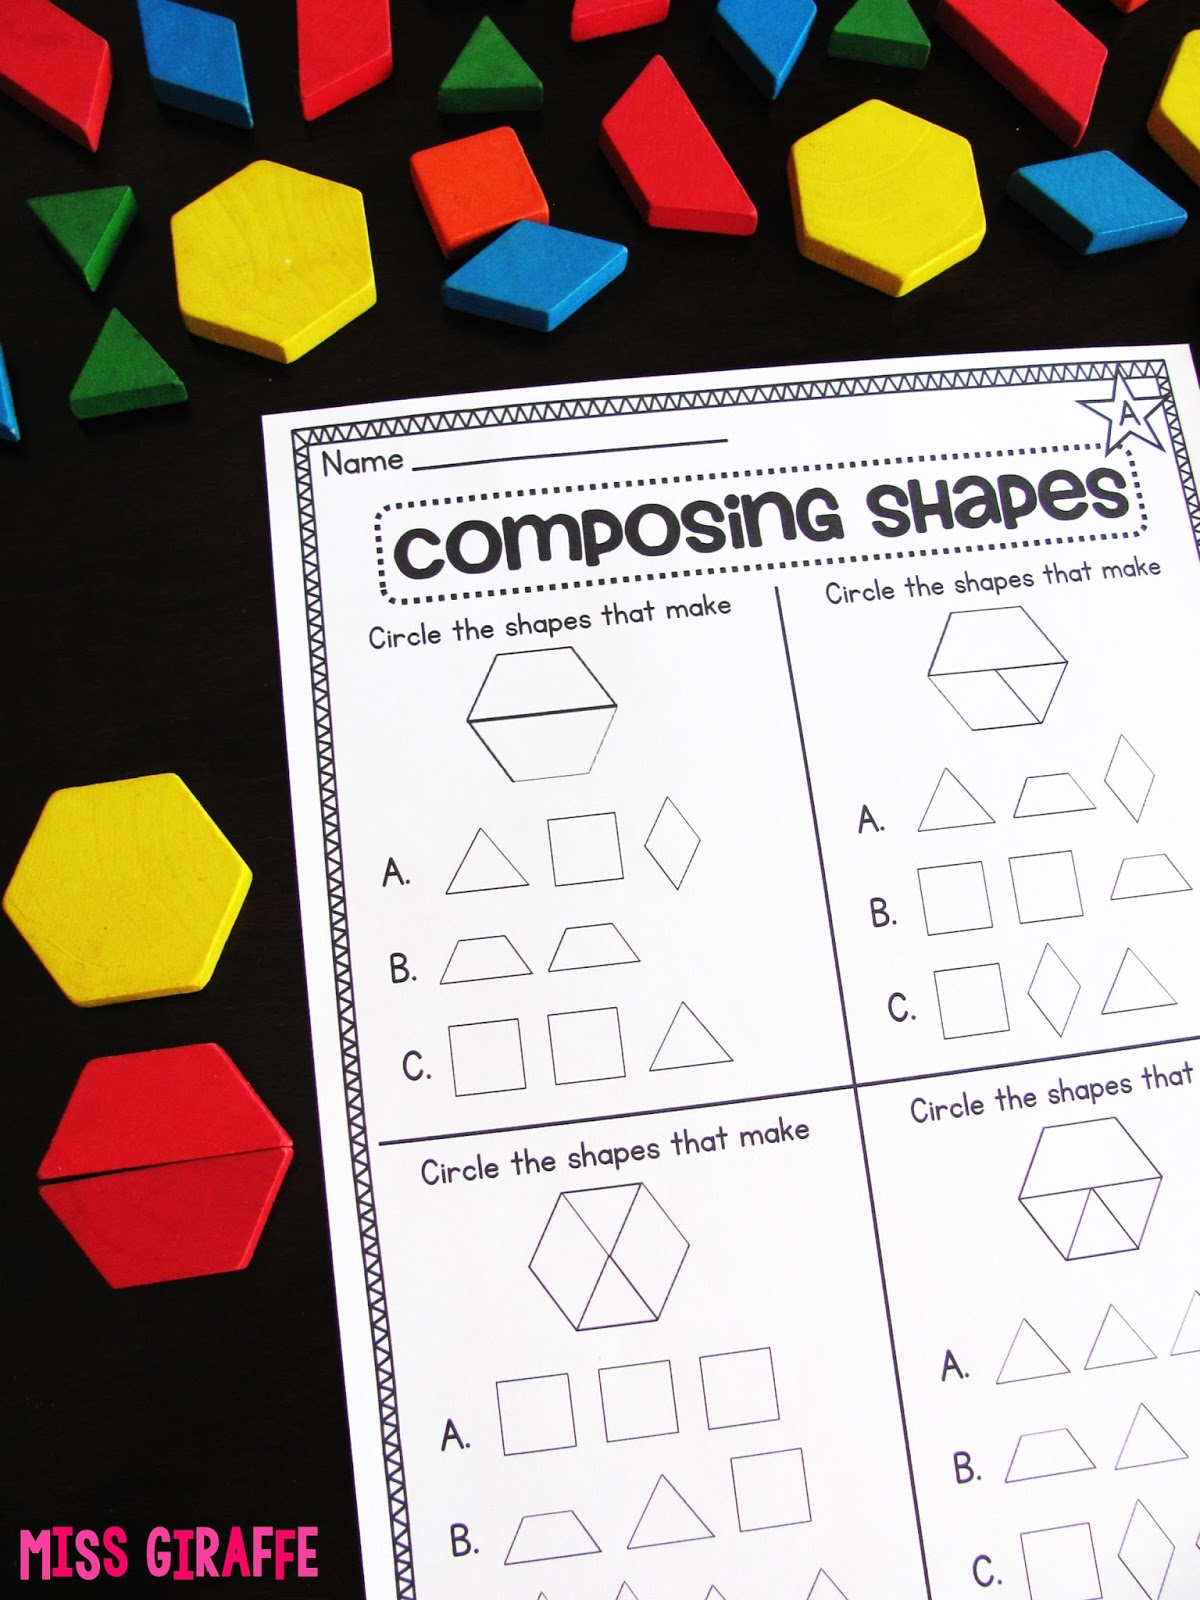 Miss Giraffe S Class Composing Shapes In 1st Grade